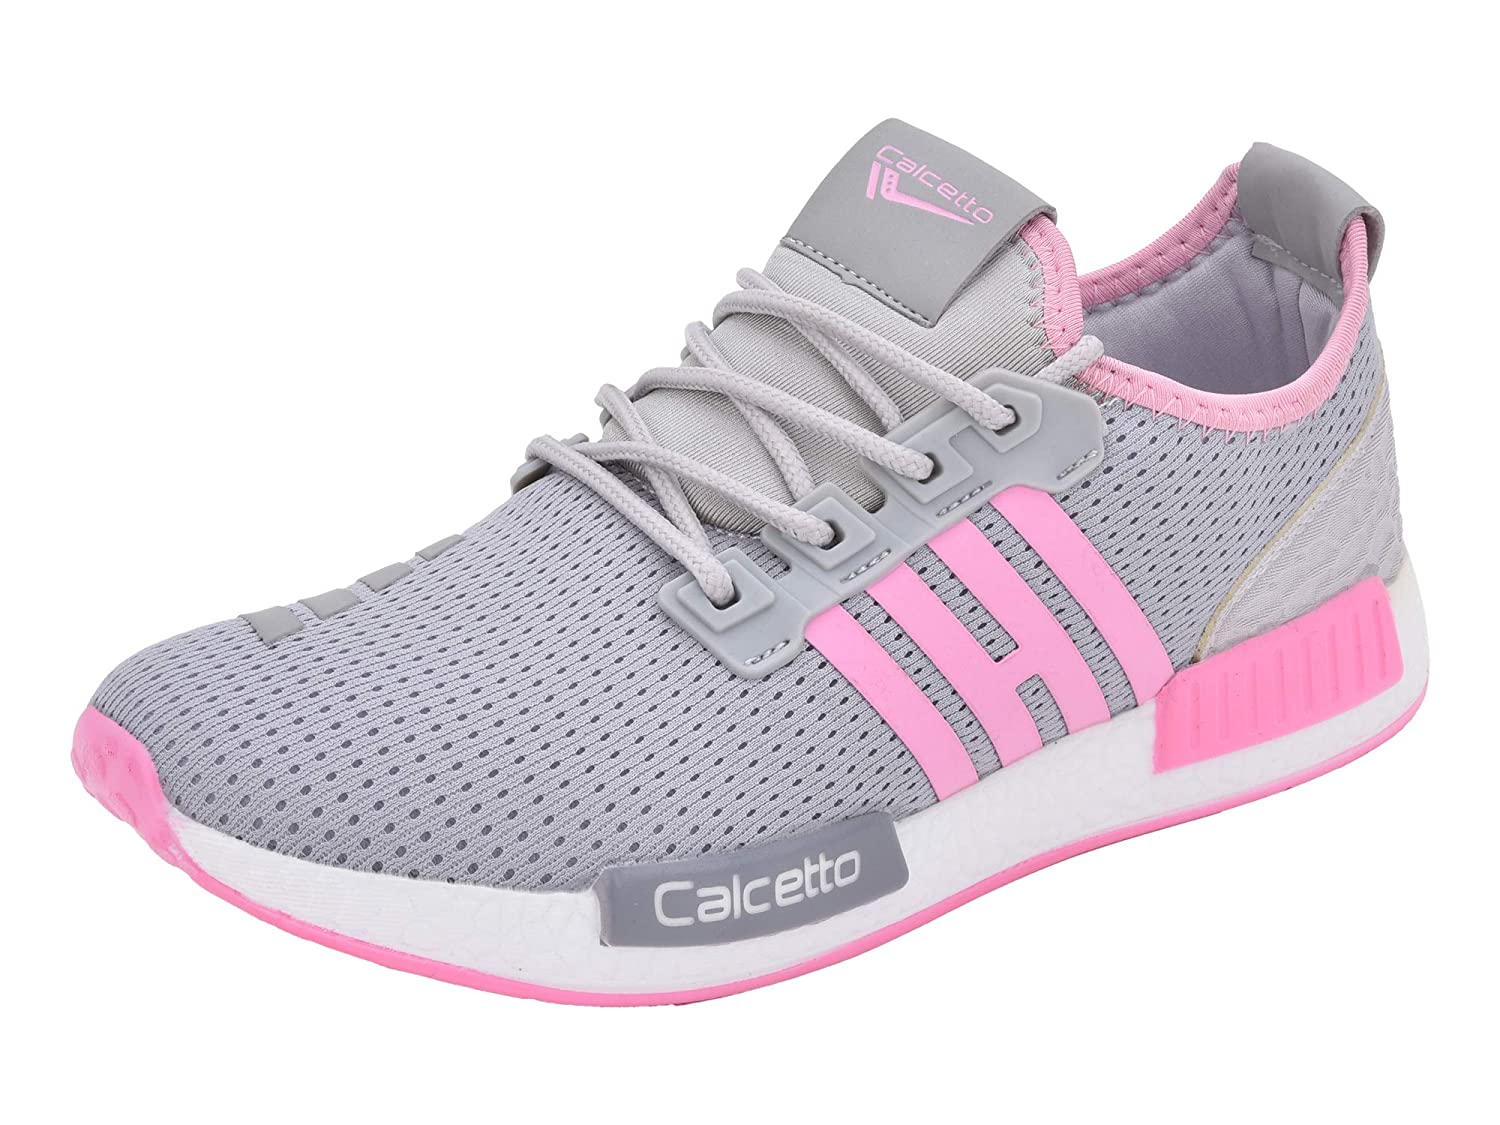 Buy calcetto Womens Light Grey Pink